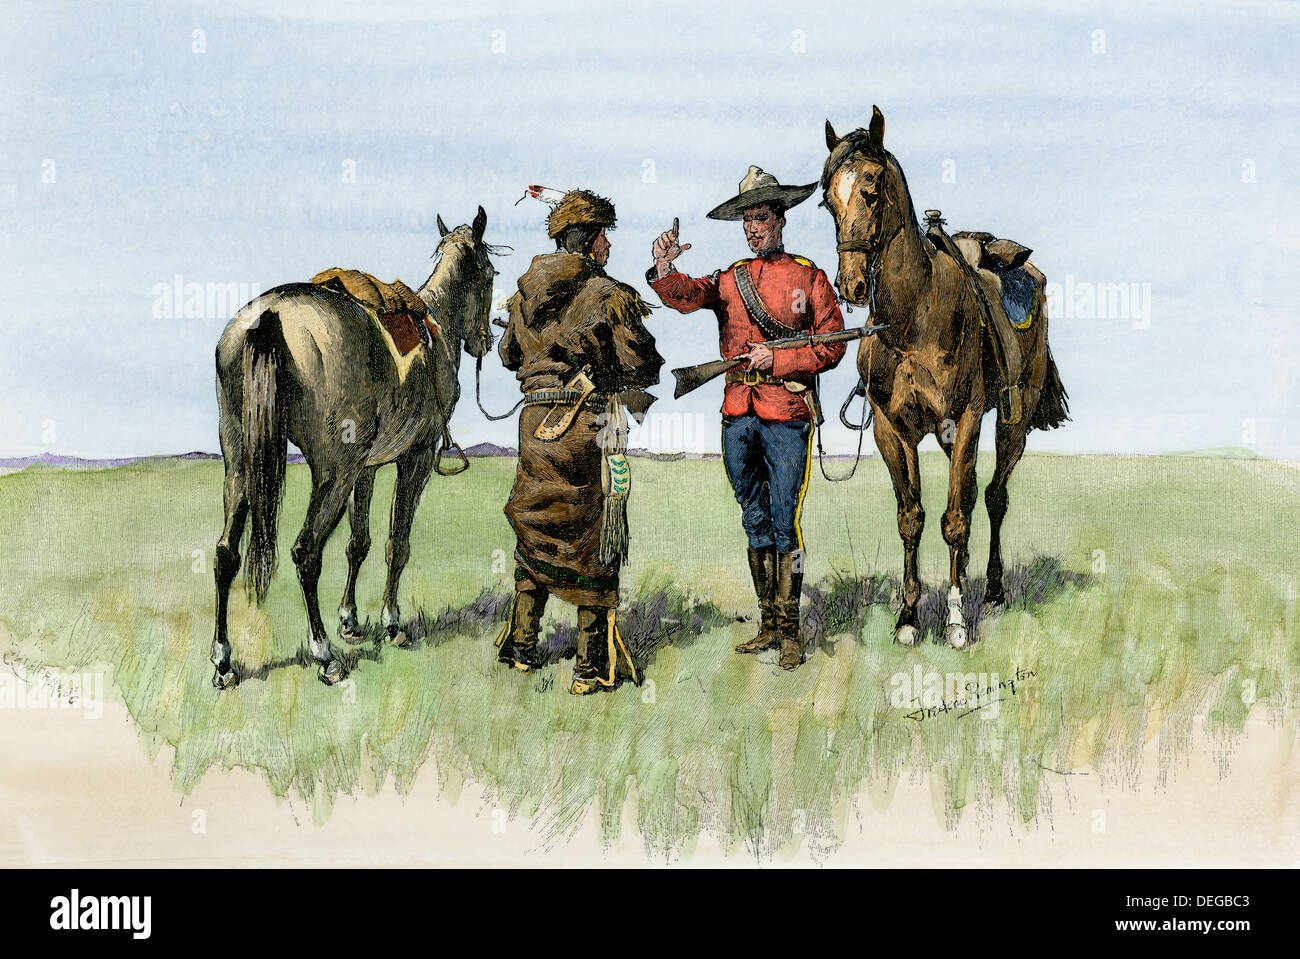 Canadian Mountie warning a traveling aboriginal on the northern plains, late 1800s. Hand-colored woodcut of a Frederic Remington illustration - Stock Image